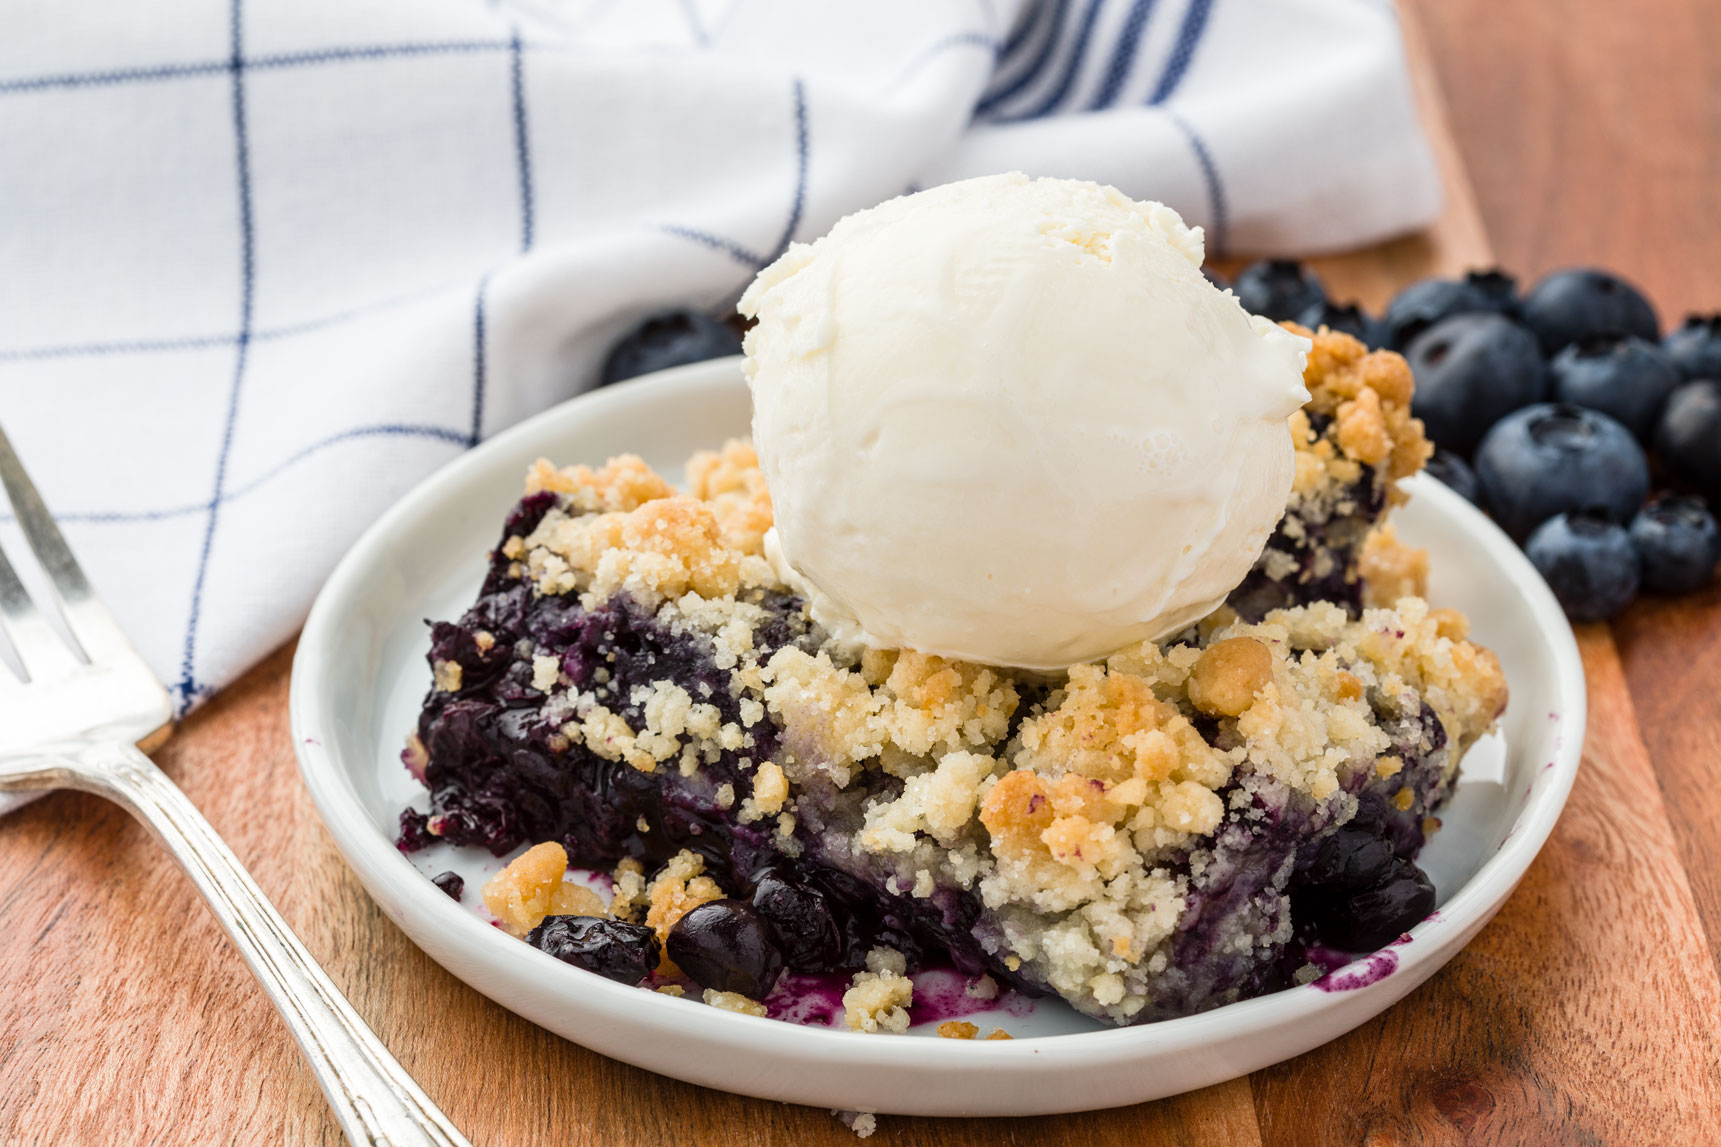 Blueberry crisp topped with vanilla ice cream on a small plate